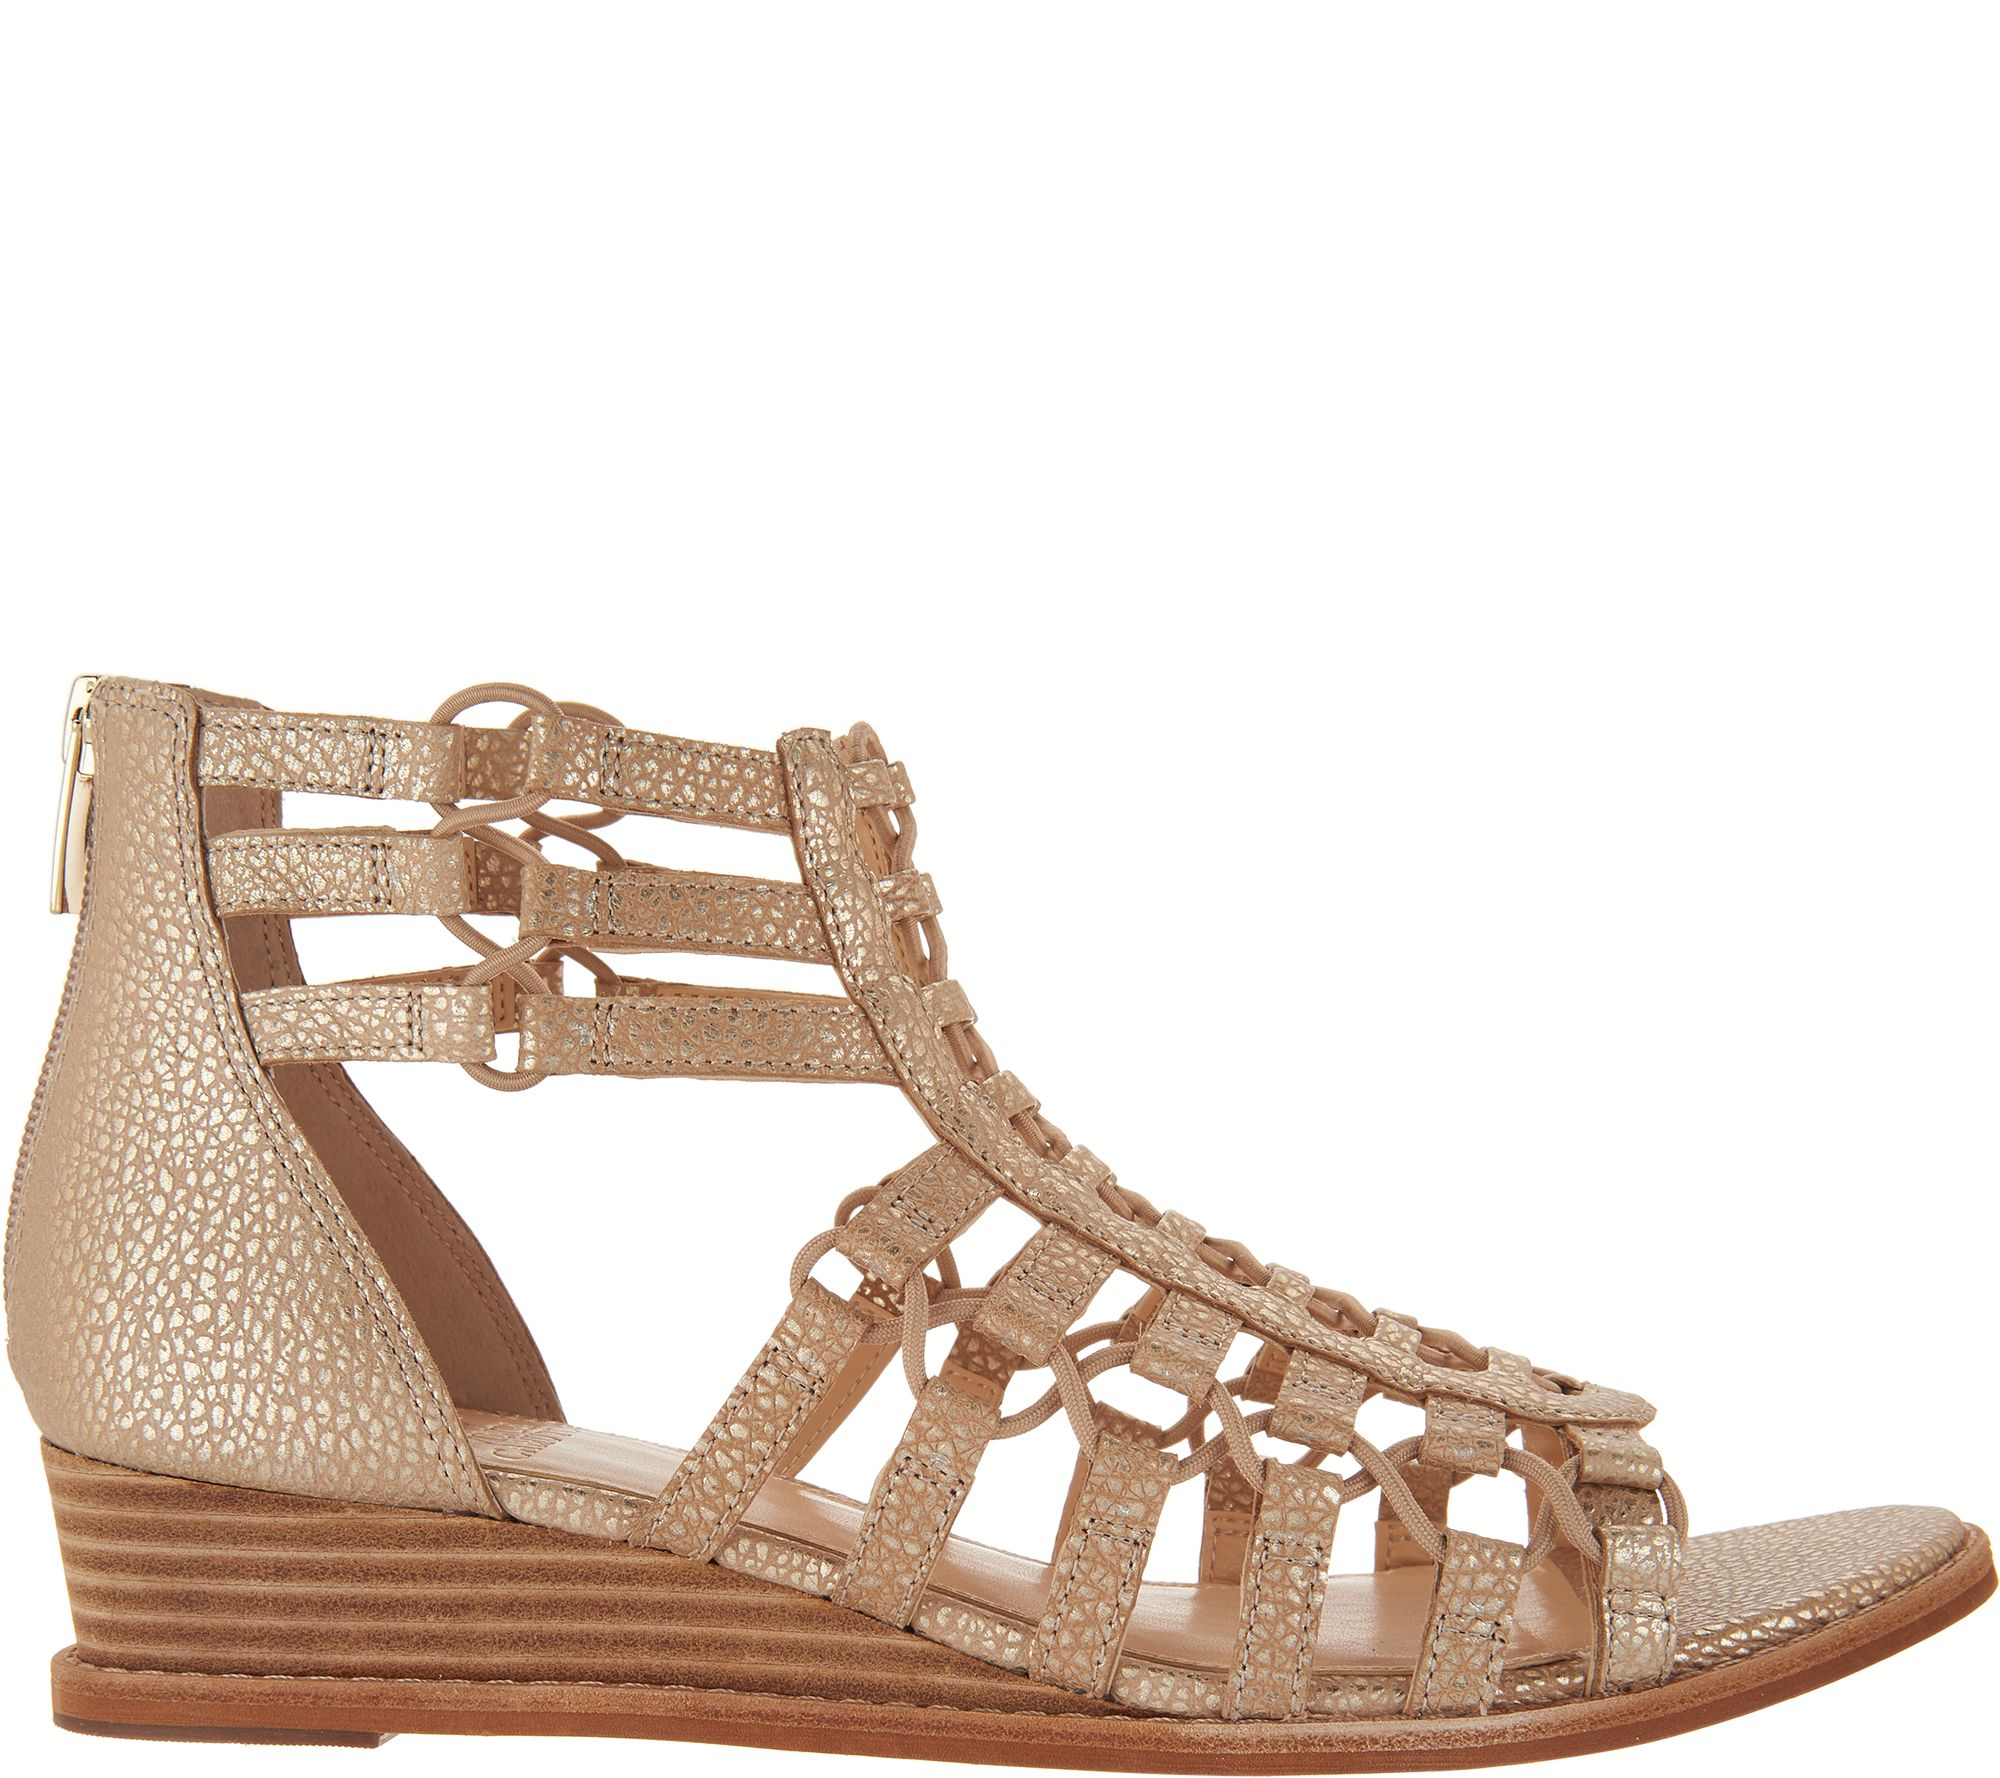 Quot As Is Quot Vince Camuto Leather Gladiator Wedge Sandals